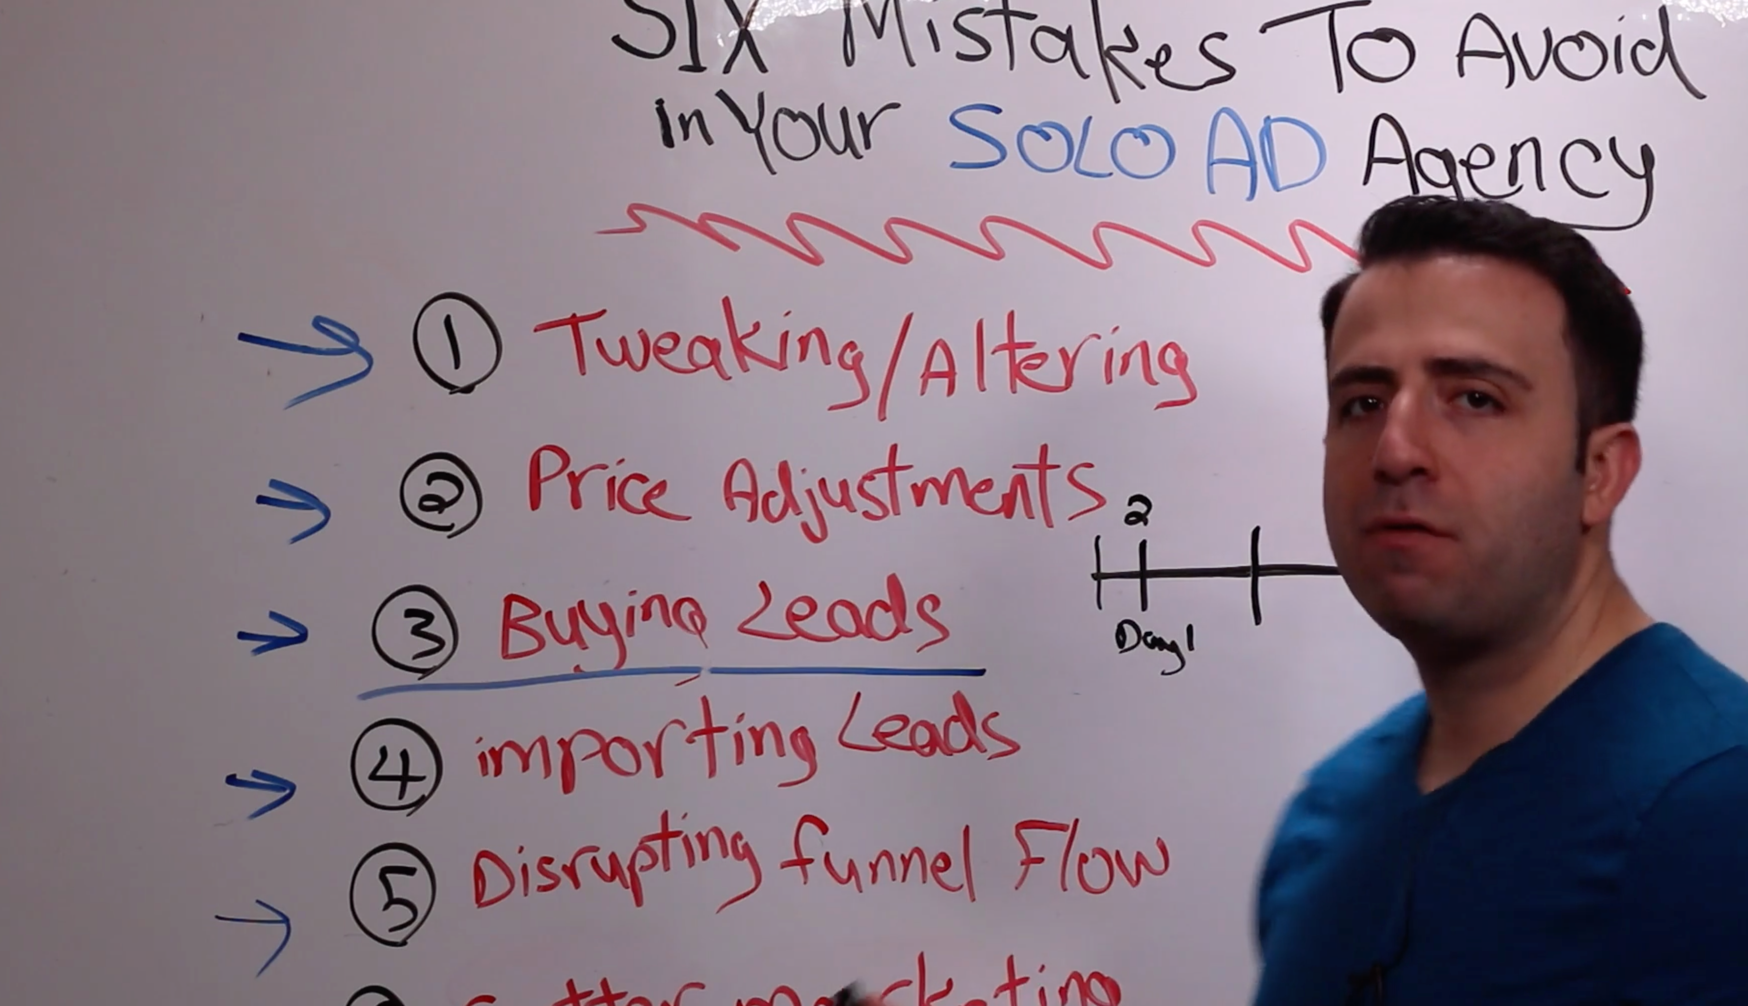 SIX Mistakes To Avoid In Your Solo Ads Business